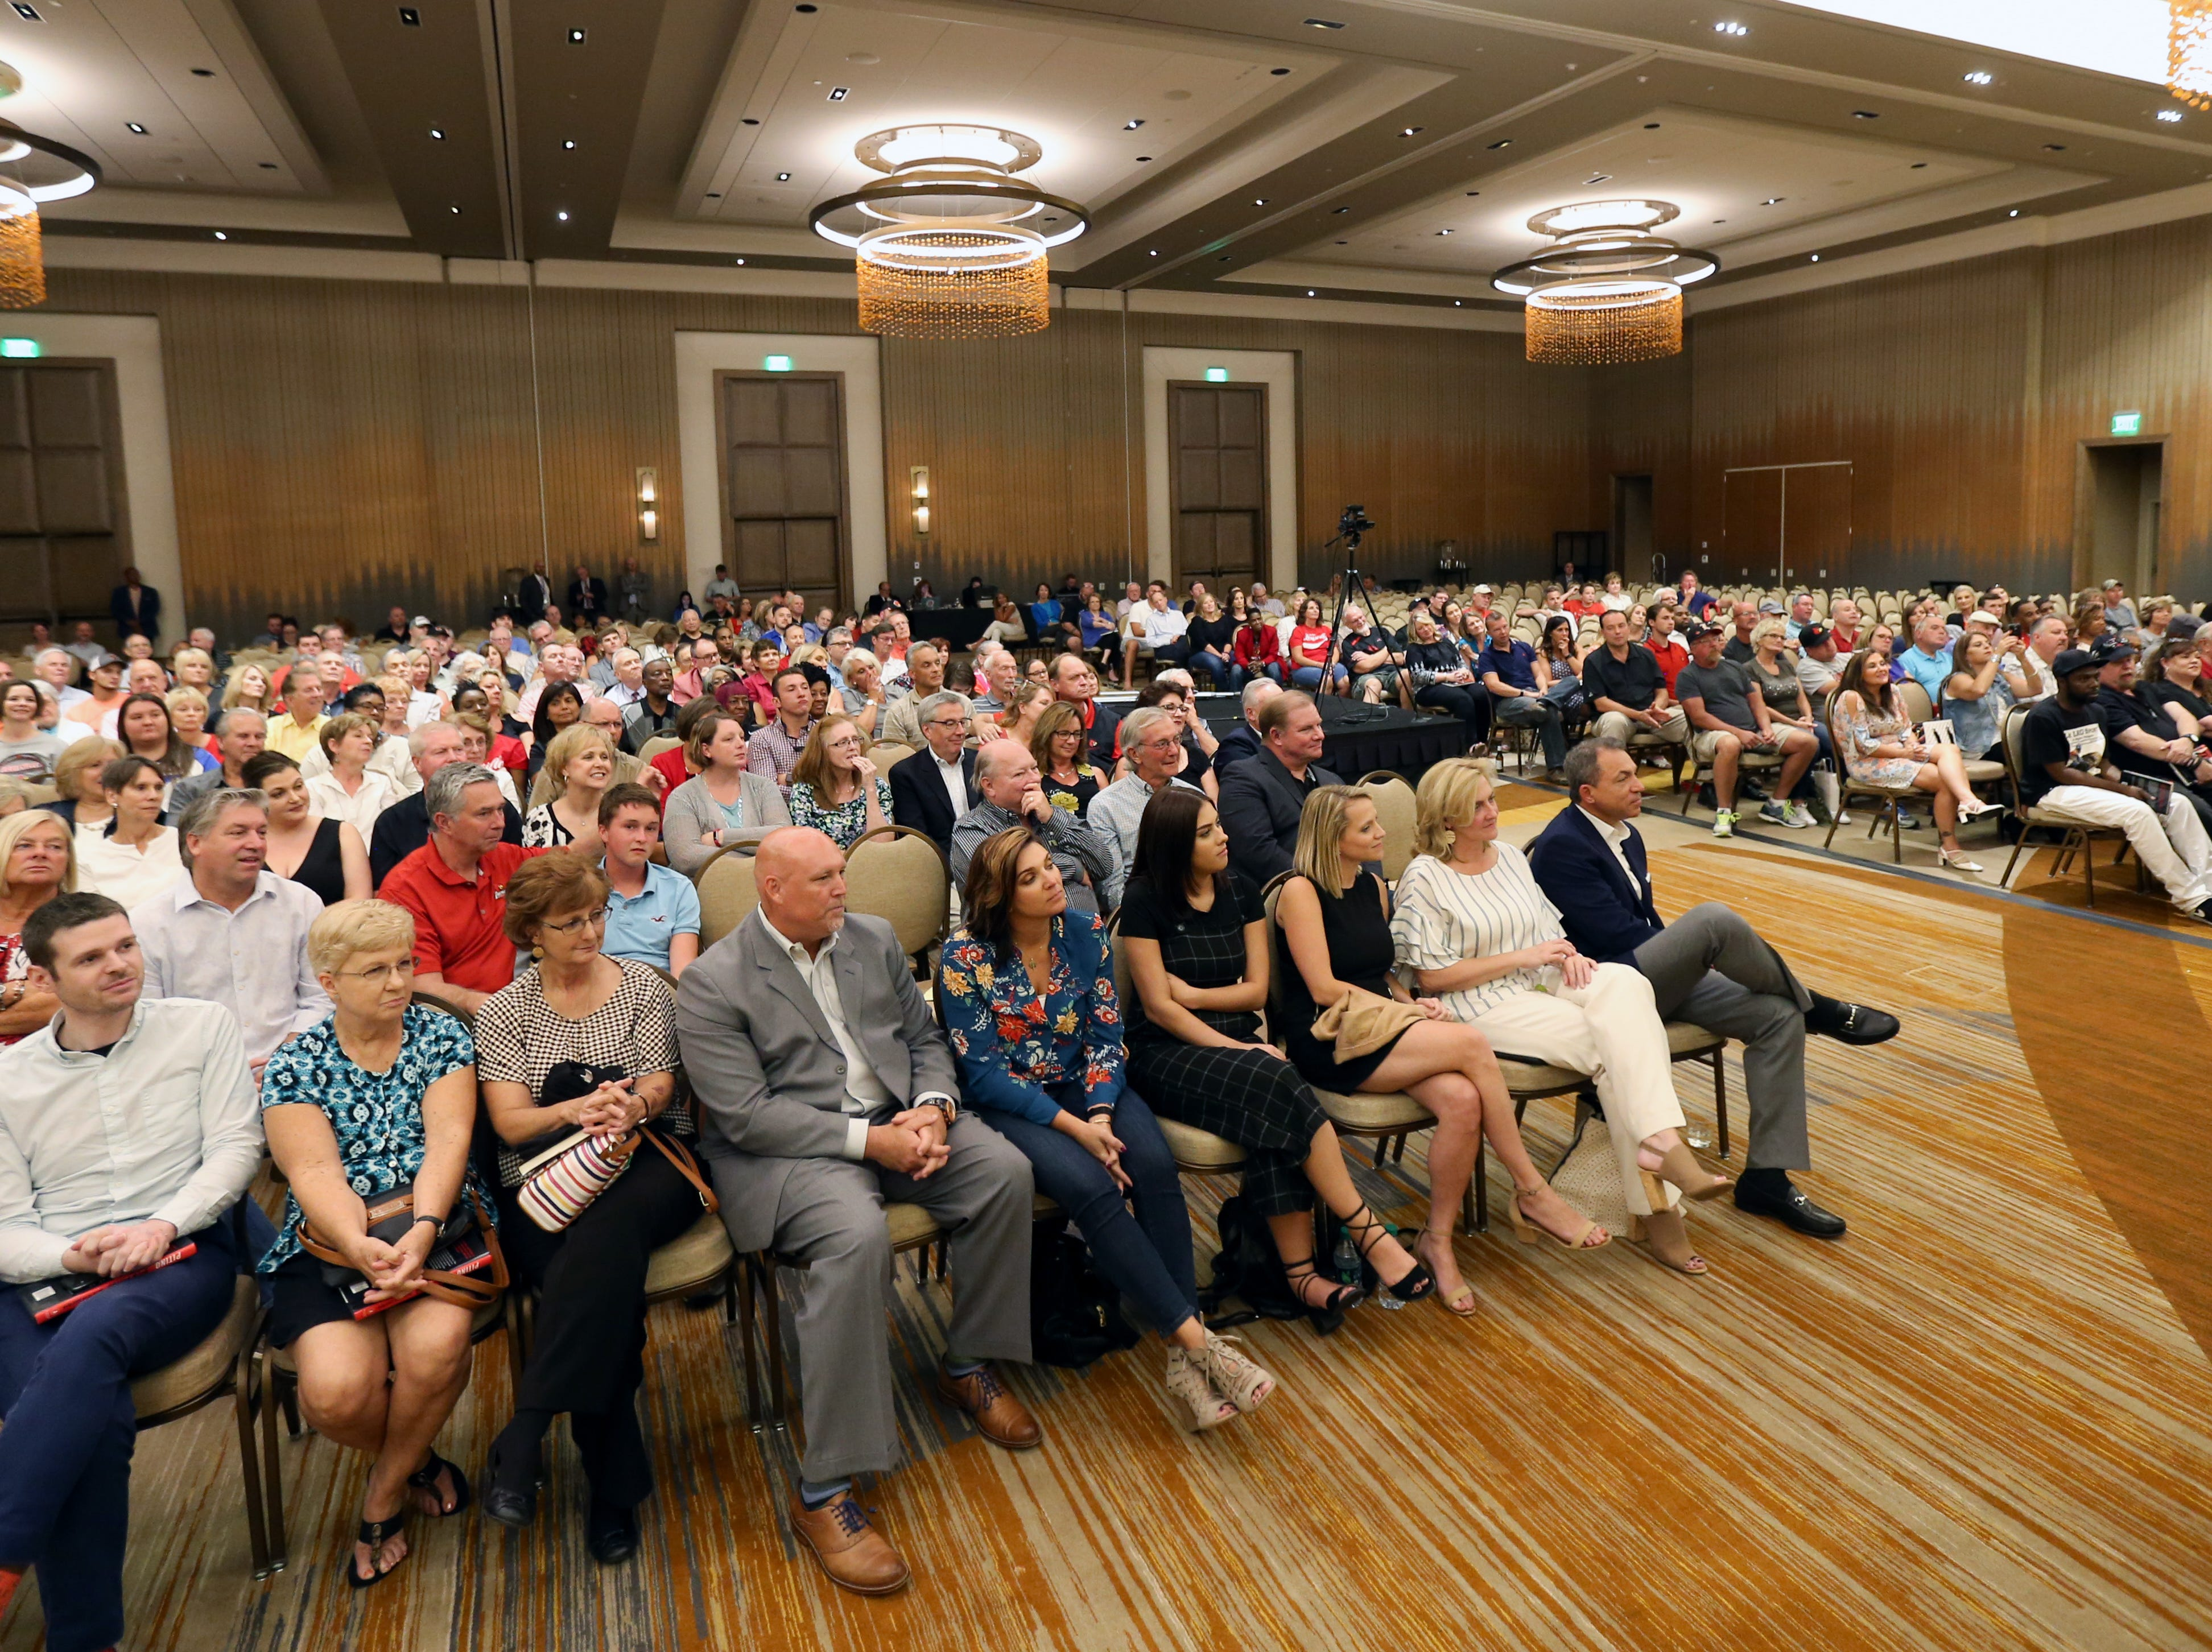 The audience listens as Rick Pitino talks with Courier Journal's Jeff Greer at the Omni Hotel on Friday afternoon after a book signing in Louisville, Kentucky. Sept. 14, 2018